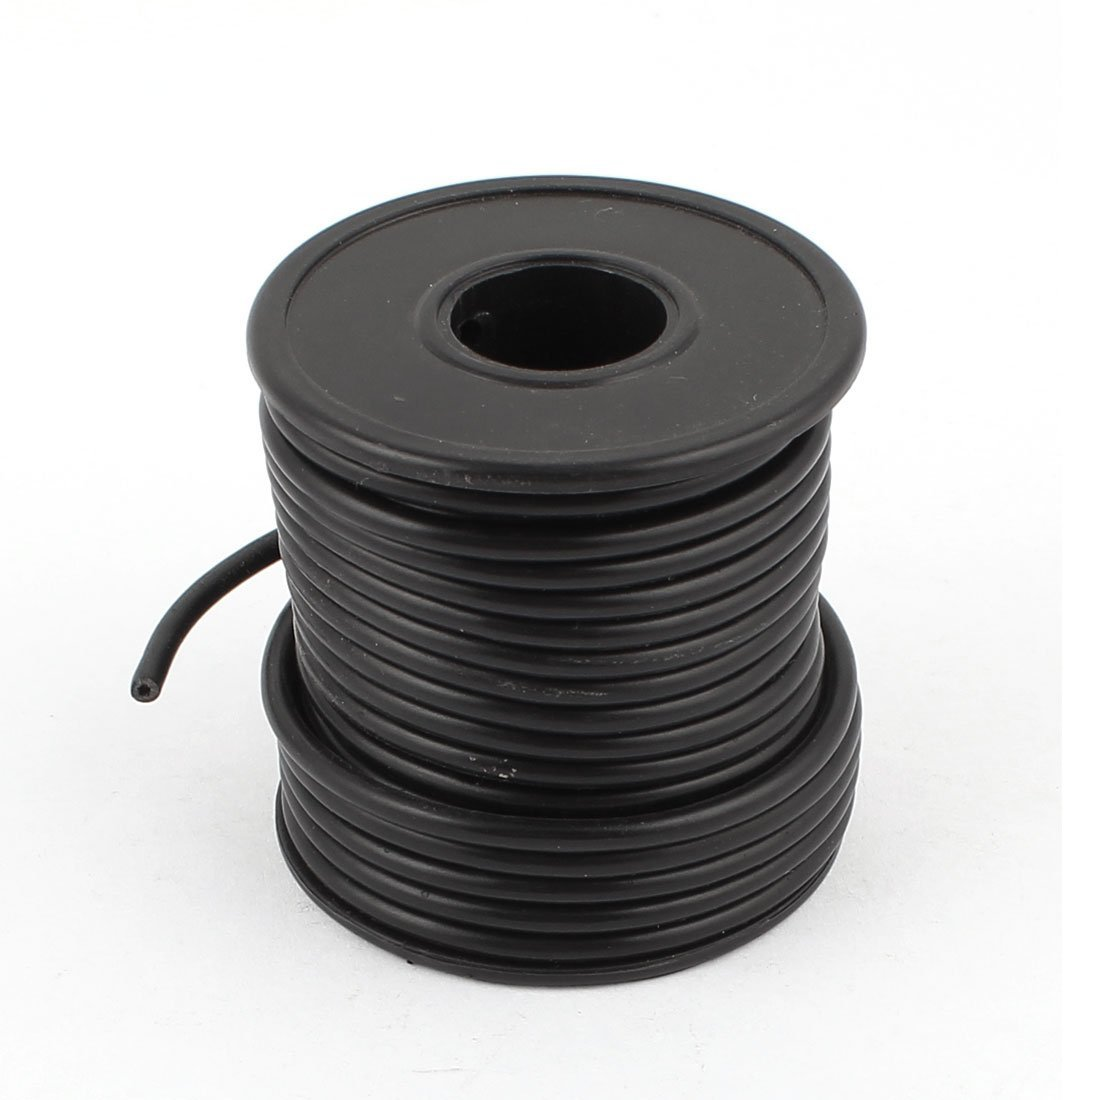 Cheap Insulated Wire 1mm2, find Insulated Wire 1mm2 deals on line at ...